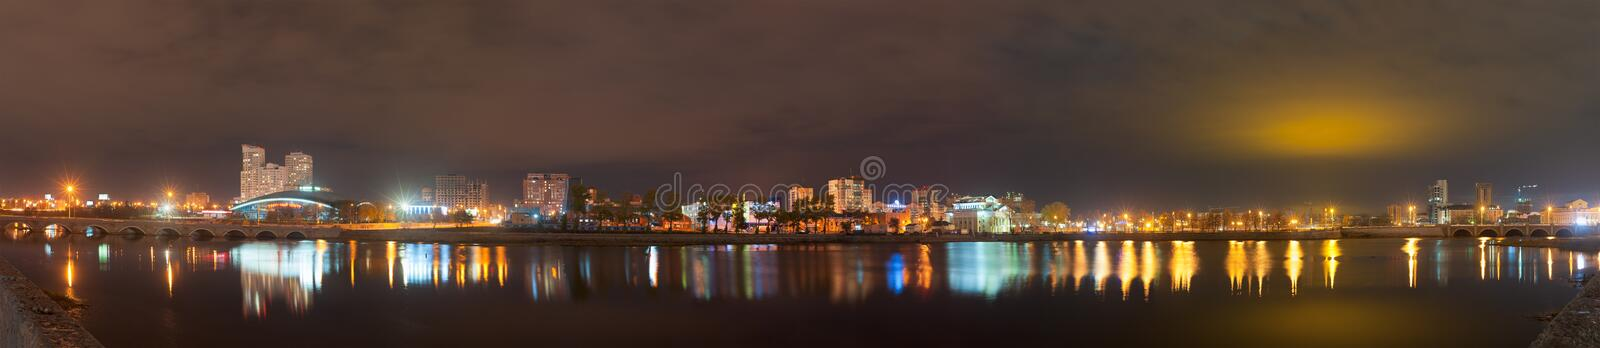 Night panorama of the Miass River embankment, Chelyabinsk, October 2017. Editorial use only. Russia, Chelyabinsk - October 2017: Night panorama of the Miass stock image